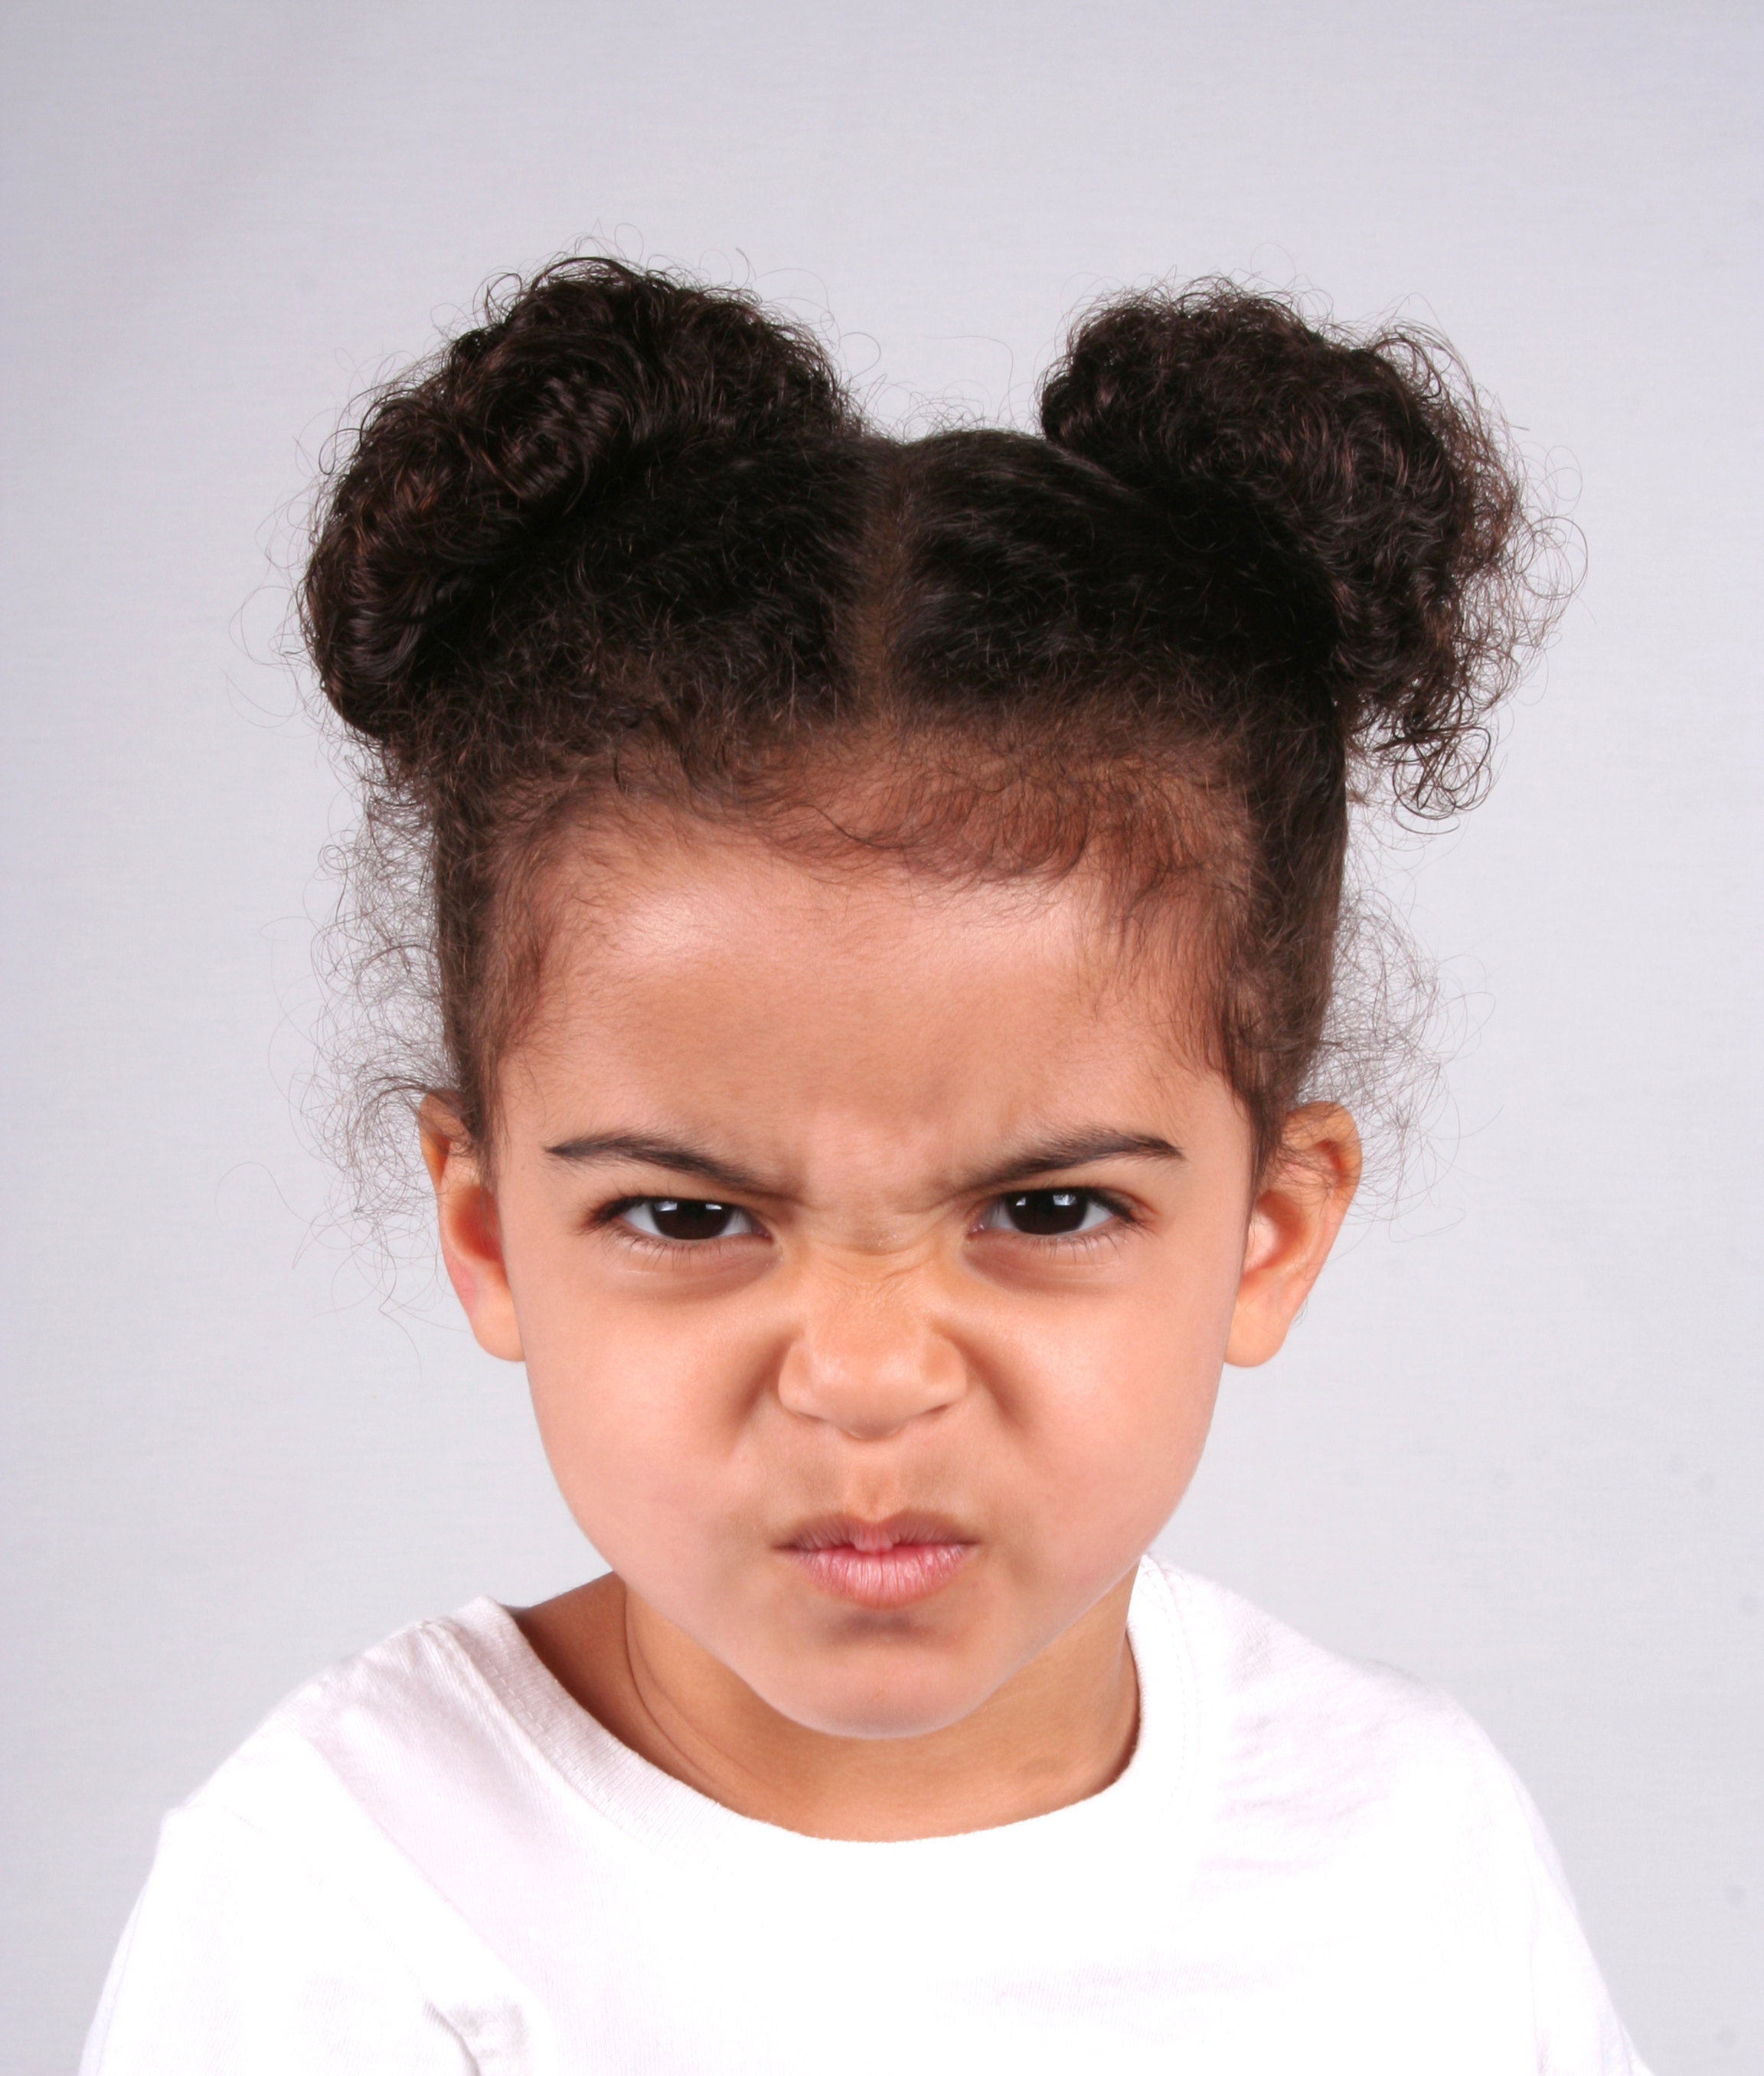 angry faces of children - photo #6